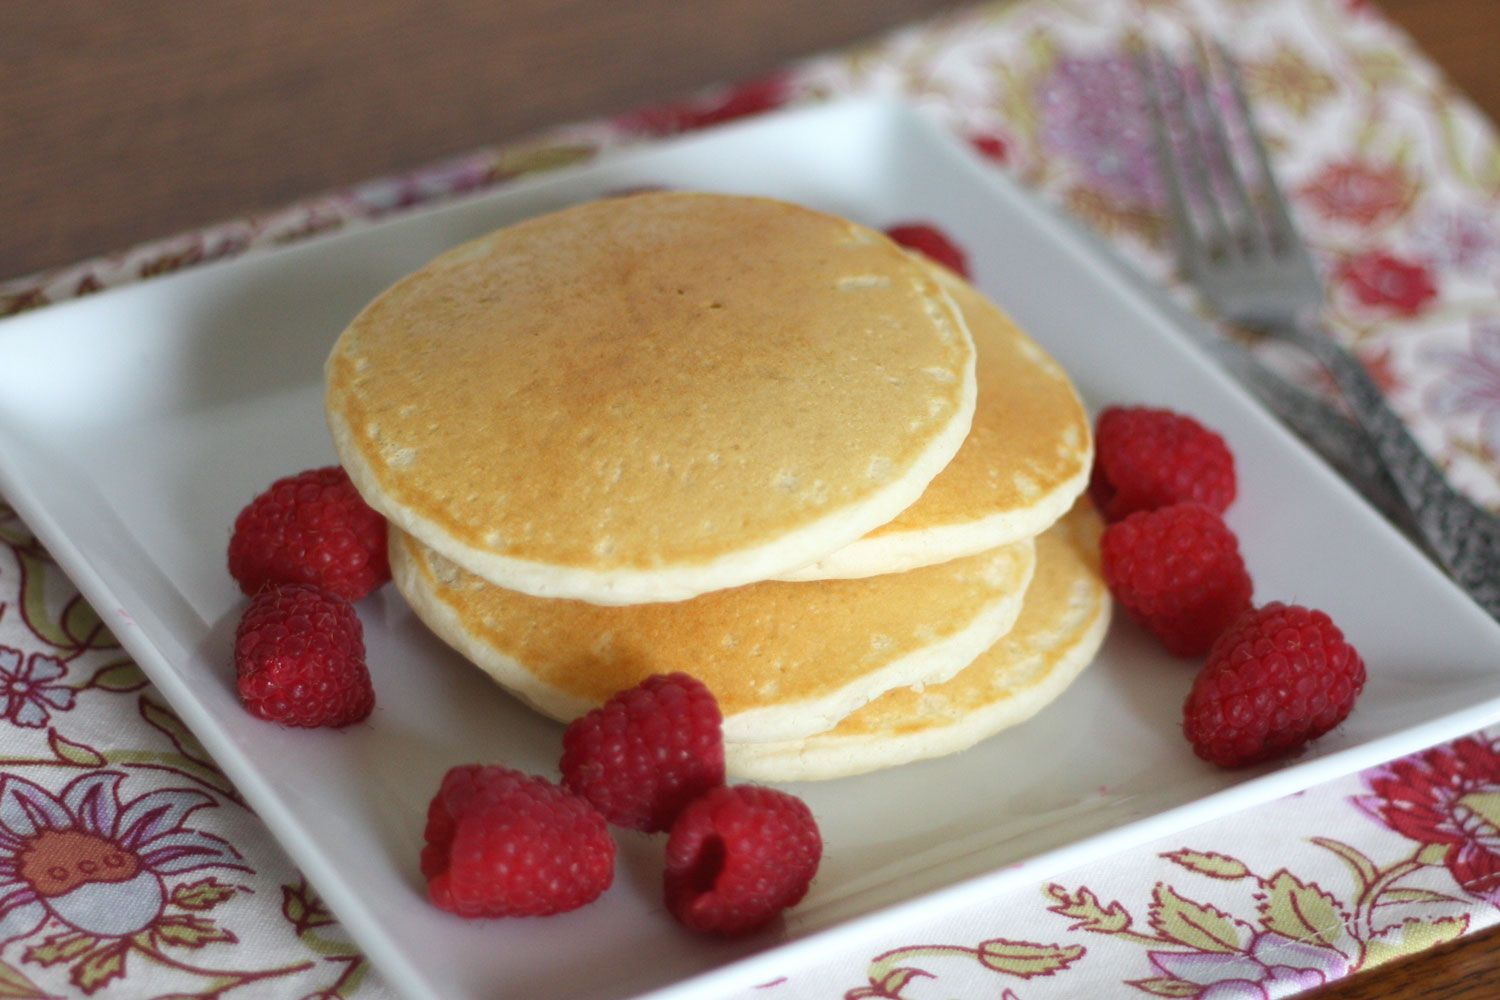 Light and fluffy gluten free pancakes get the recipe at light and fluffy gluten free pancakes get the recipe at barefeetinthekitchen 3 milk free pancake recipeeasy ccuart Image collections